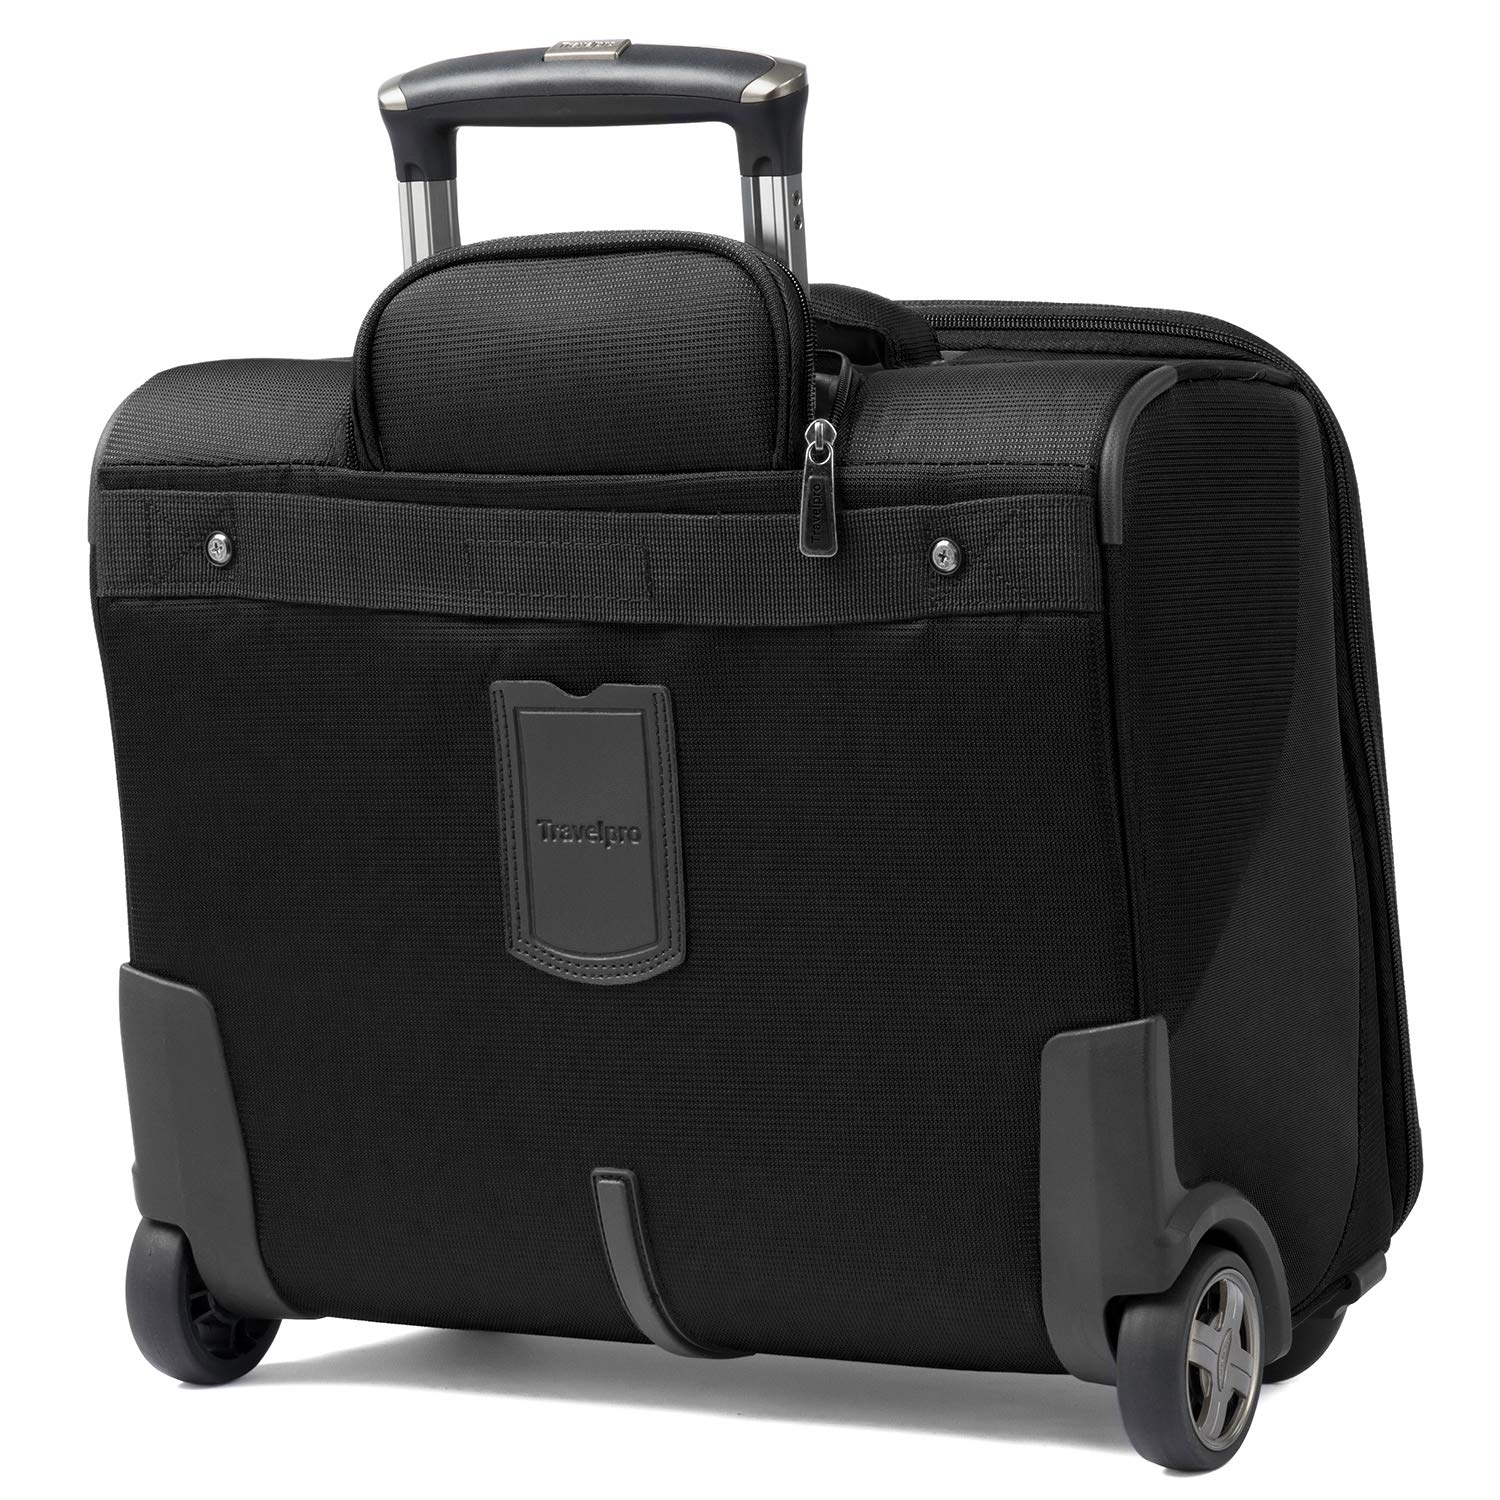 Travelpro Luggage Macys   Court Appointed Receiver